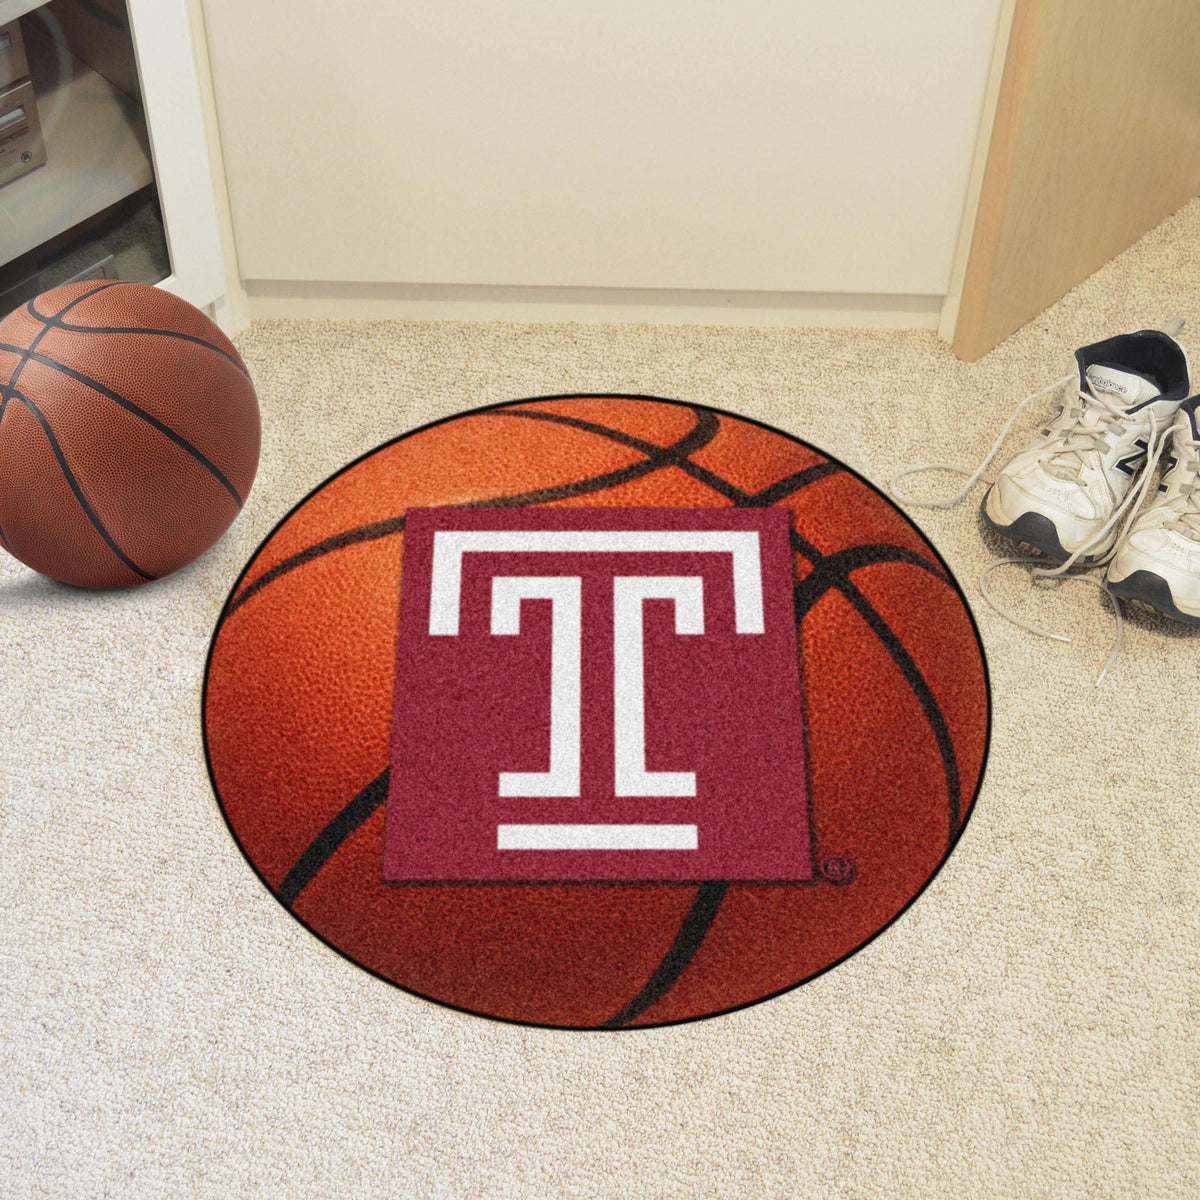 Collegiate - Basketball Mat: T - Z Collegiate Mats, Rectangular Mats, Basketball Mat, Collegiate, Home Fan Mats Temple